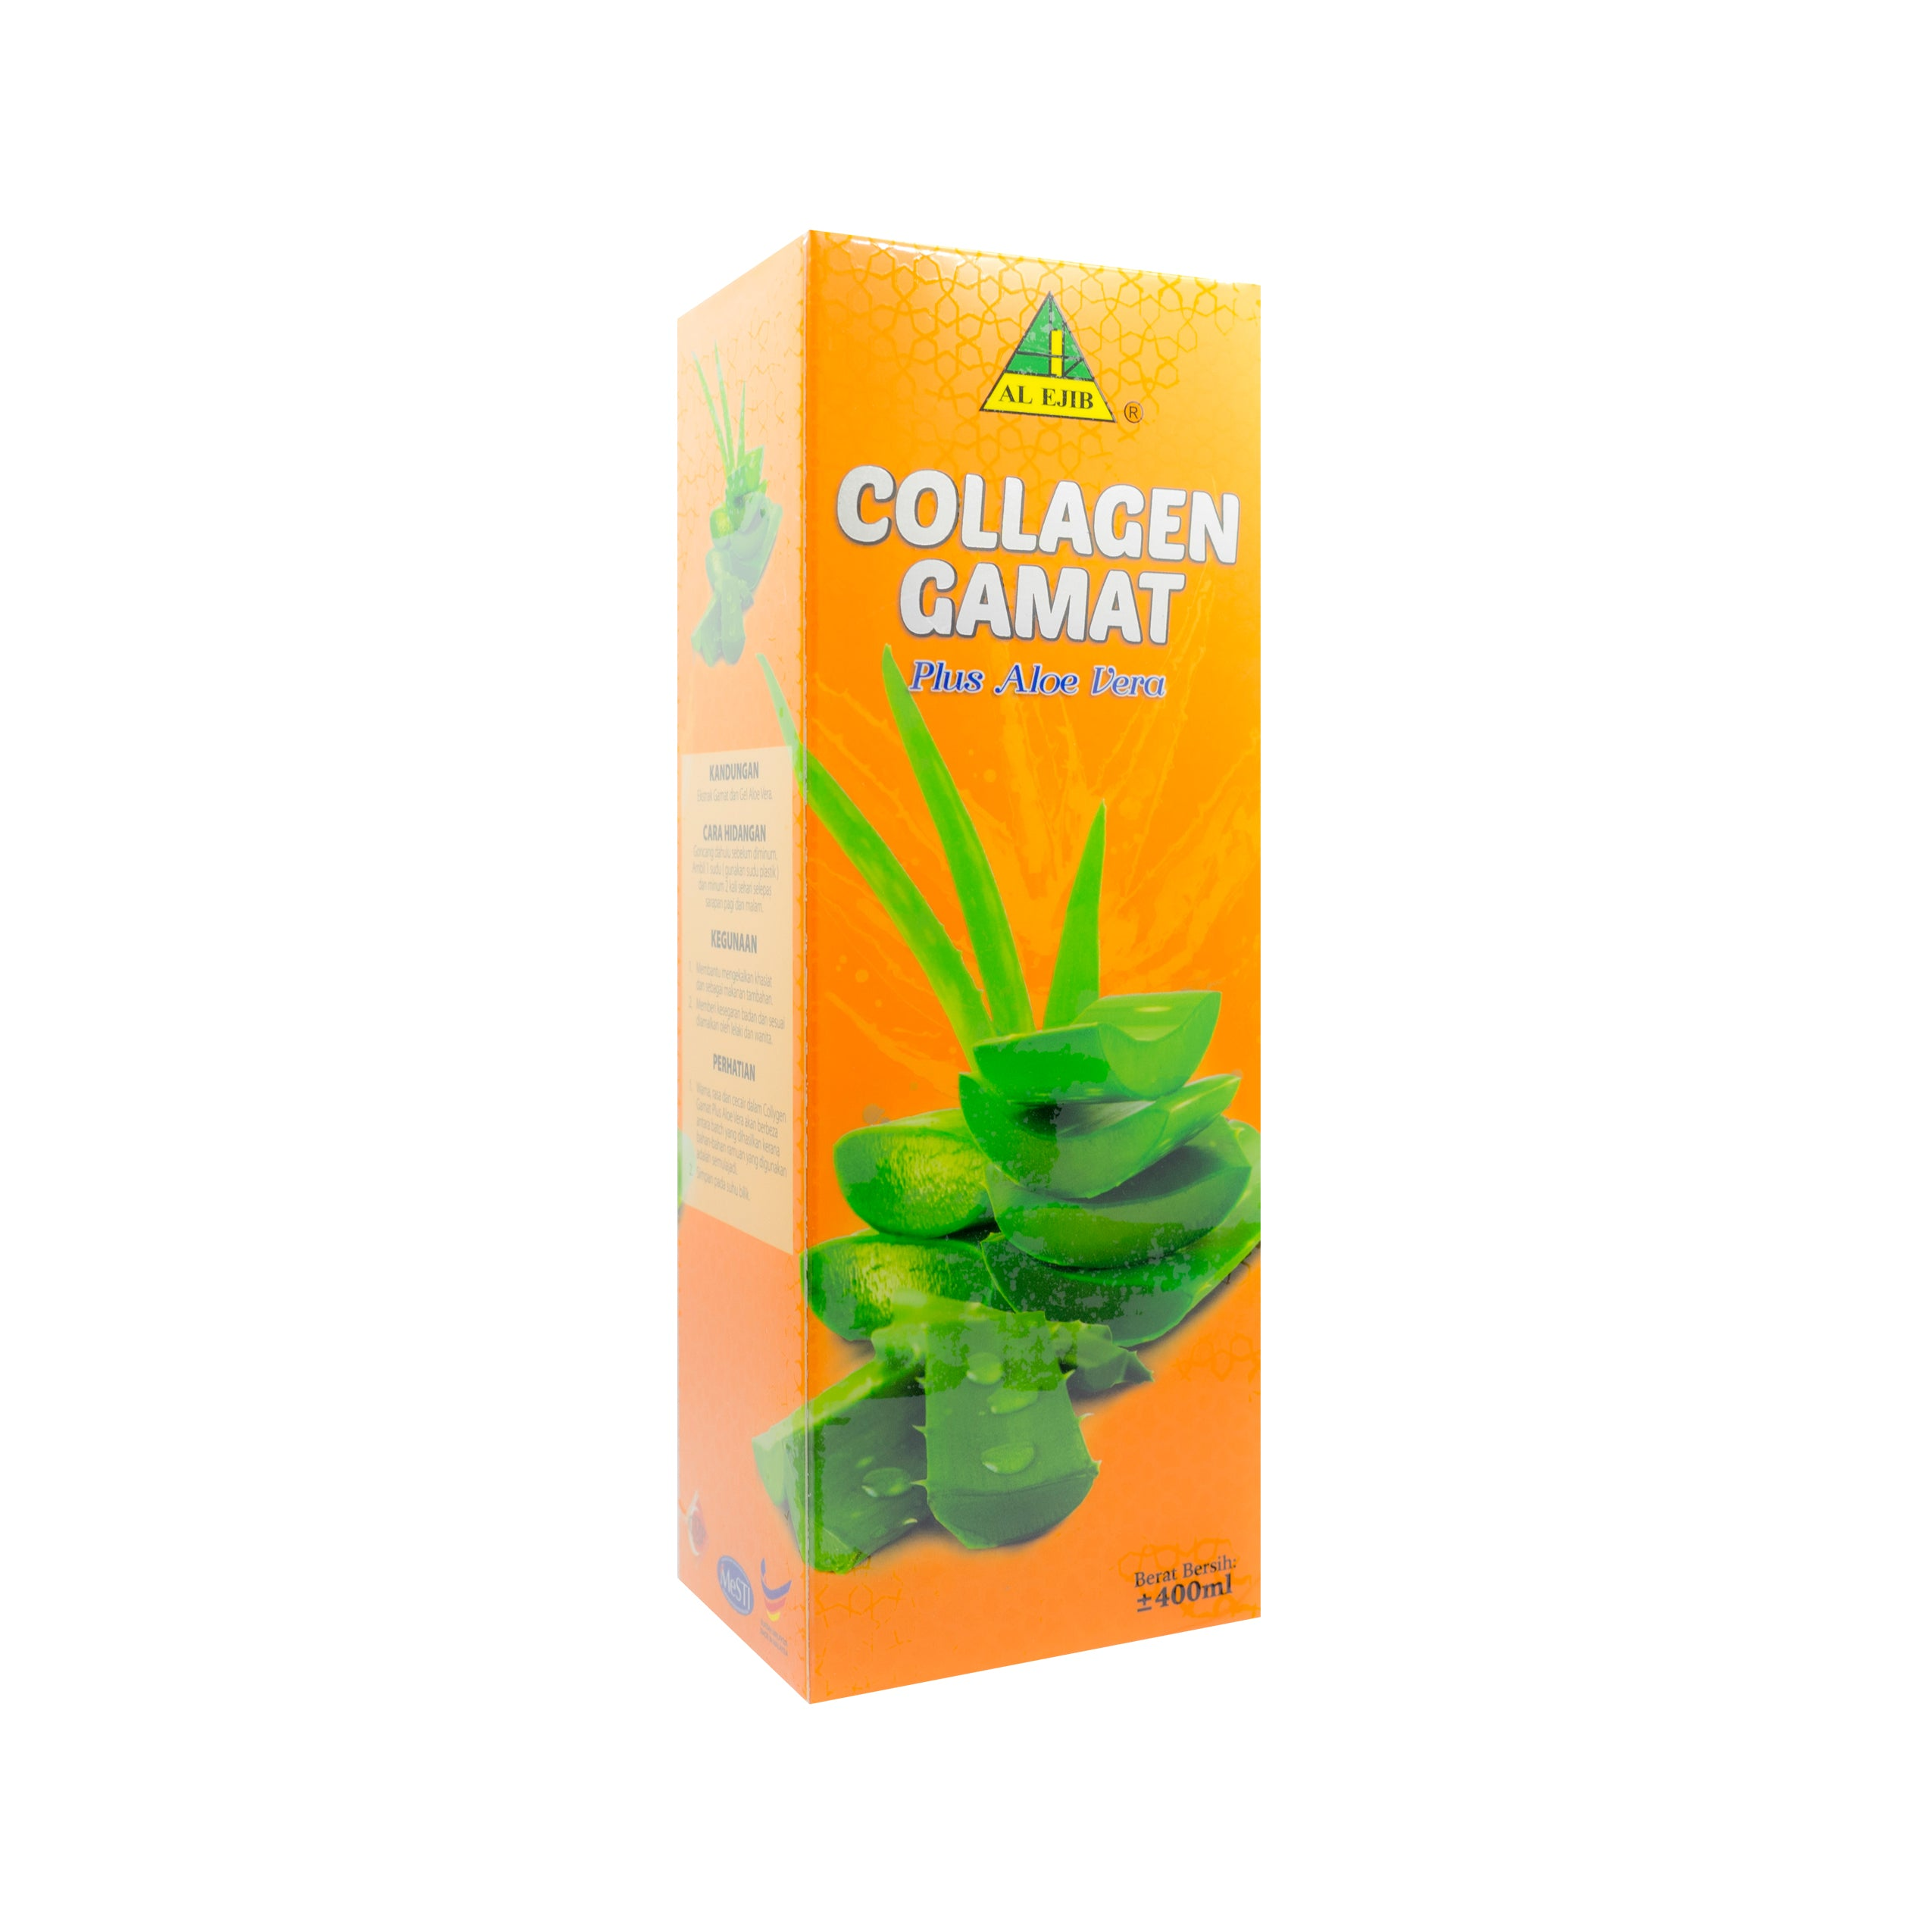 Al Ejib, Collagen Gamat Plus Aloe Vera, 400 ml